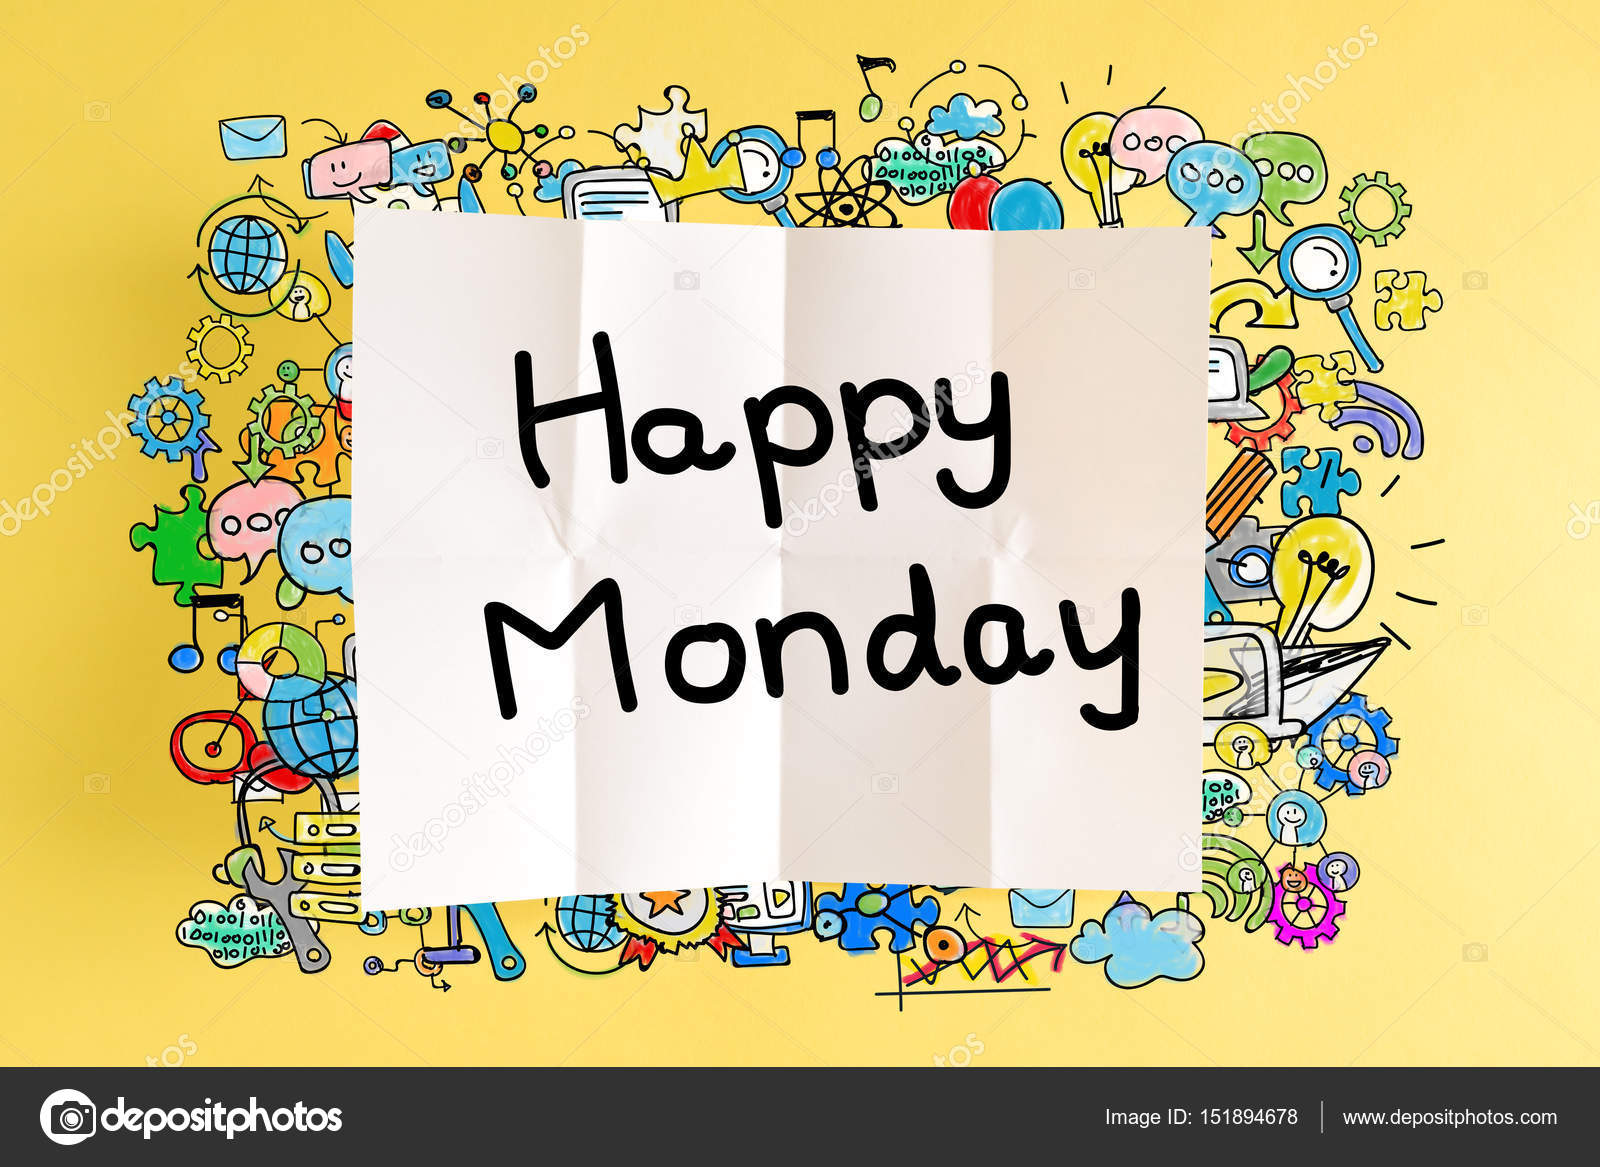 Happy Monday Text With Colorful Illustrations Stock Photo